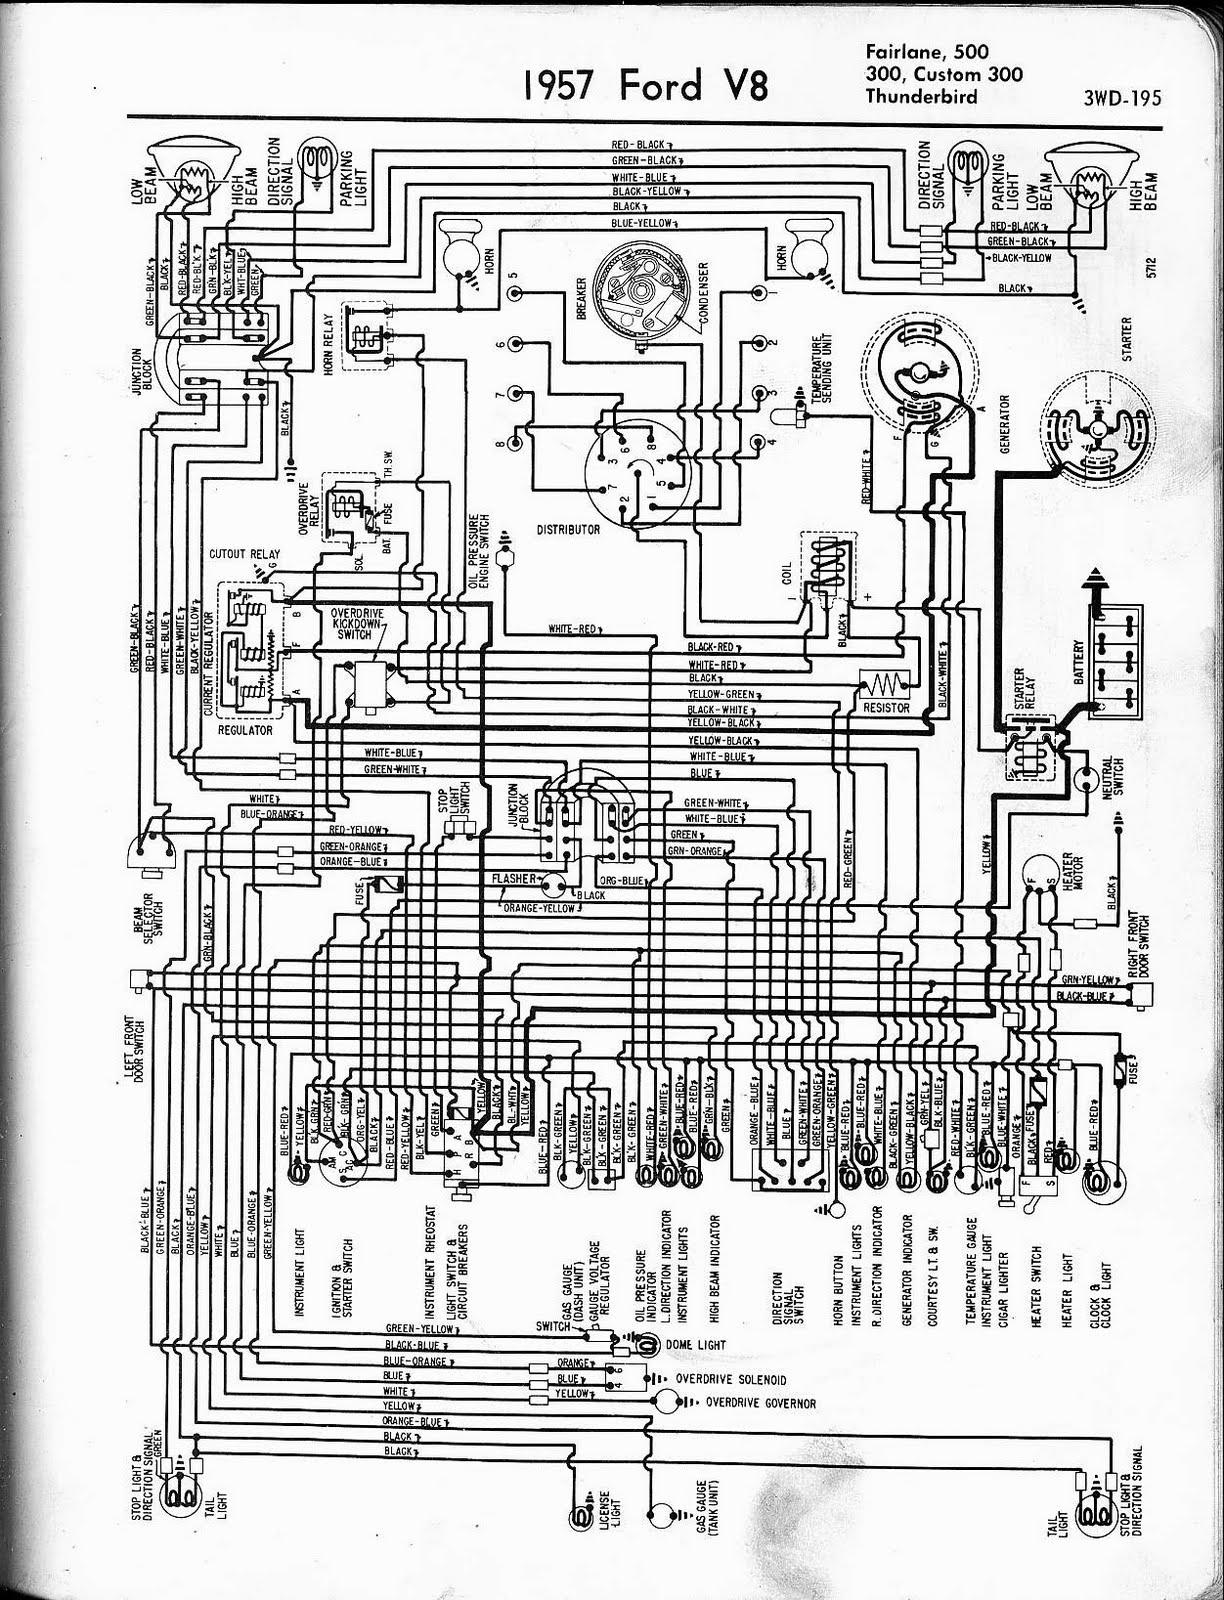 free auto wiring diagram 1957 ford v8 fairlane custom300 1947 plymouth wiring harness plymouth duster wiring [ 1224 x 1600 Pixel ]